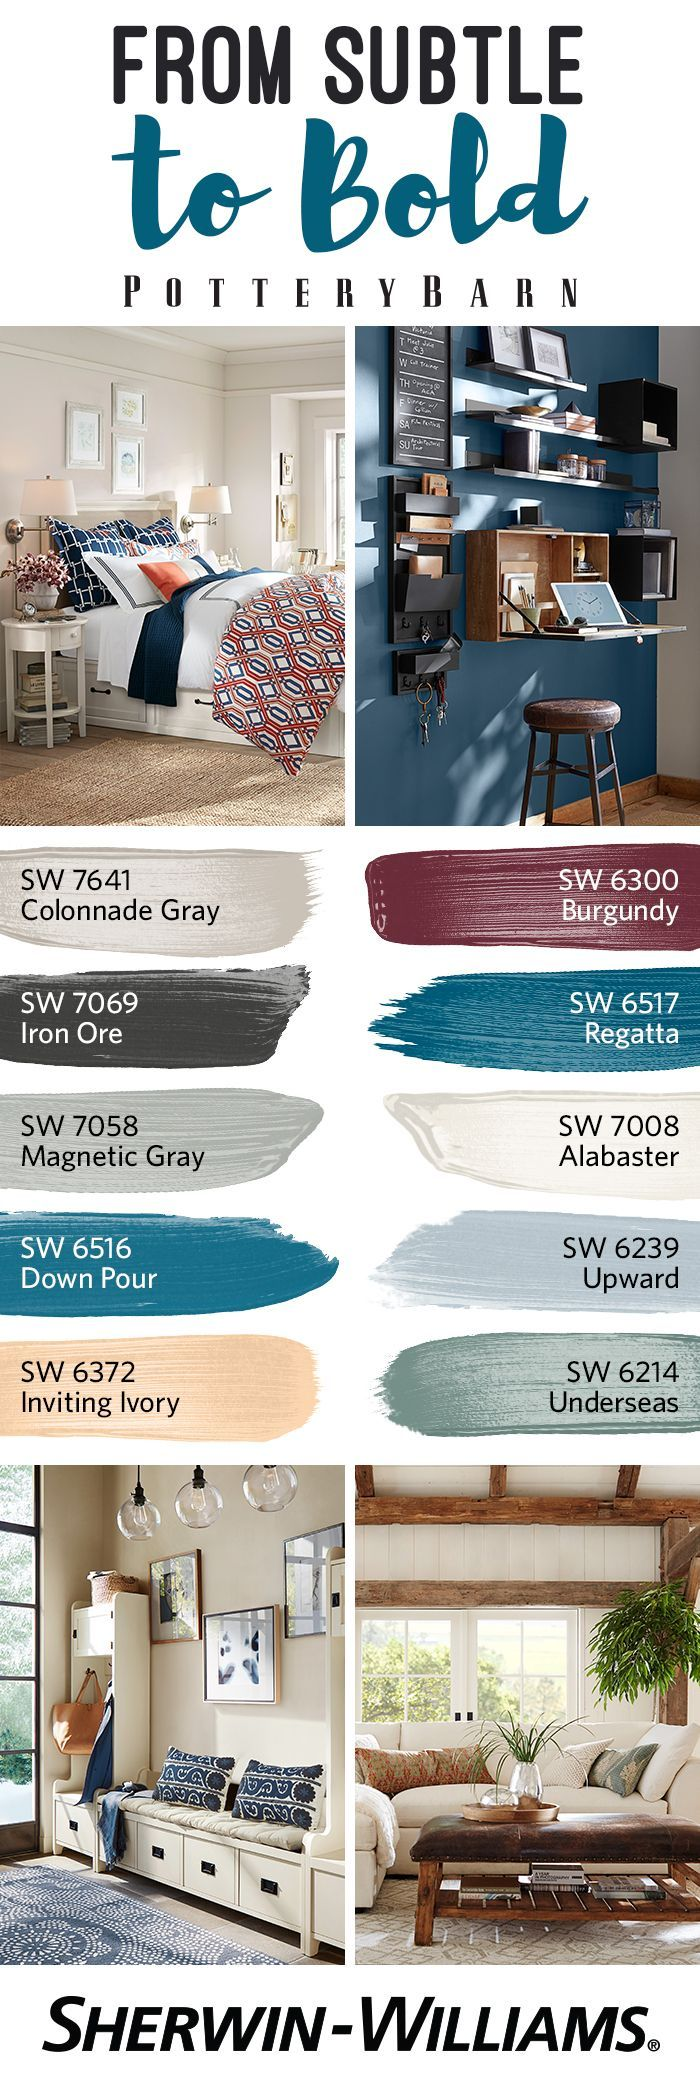 the fall winter 2016 palette from potterybarn is an exquisite